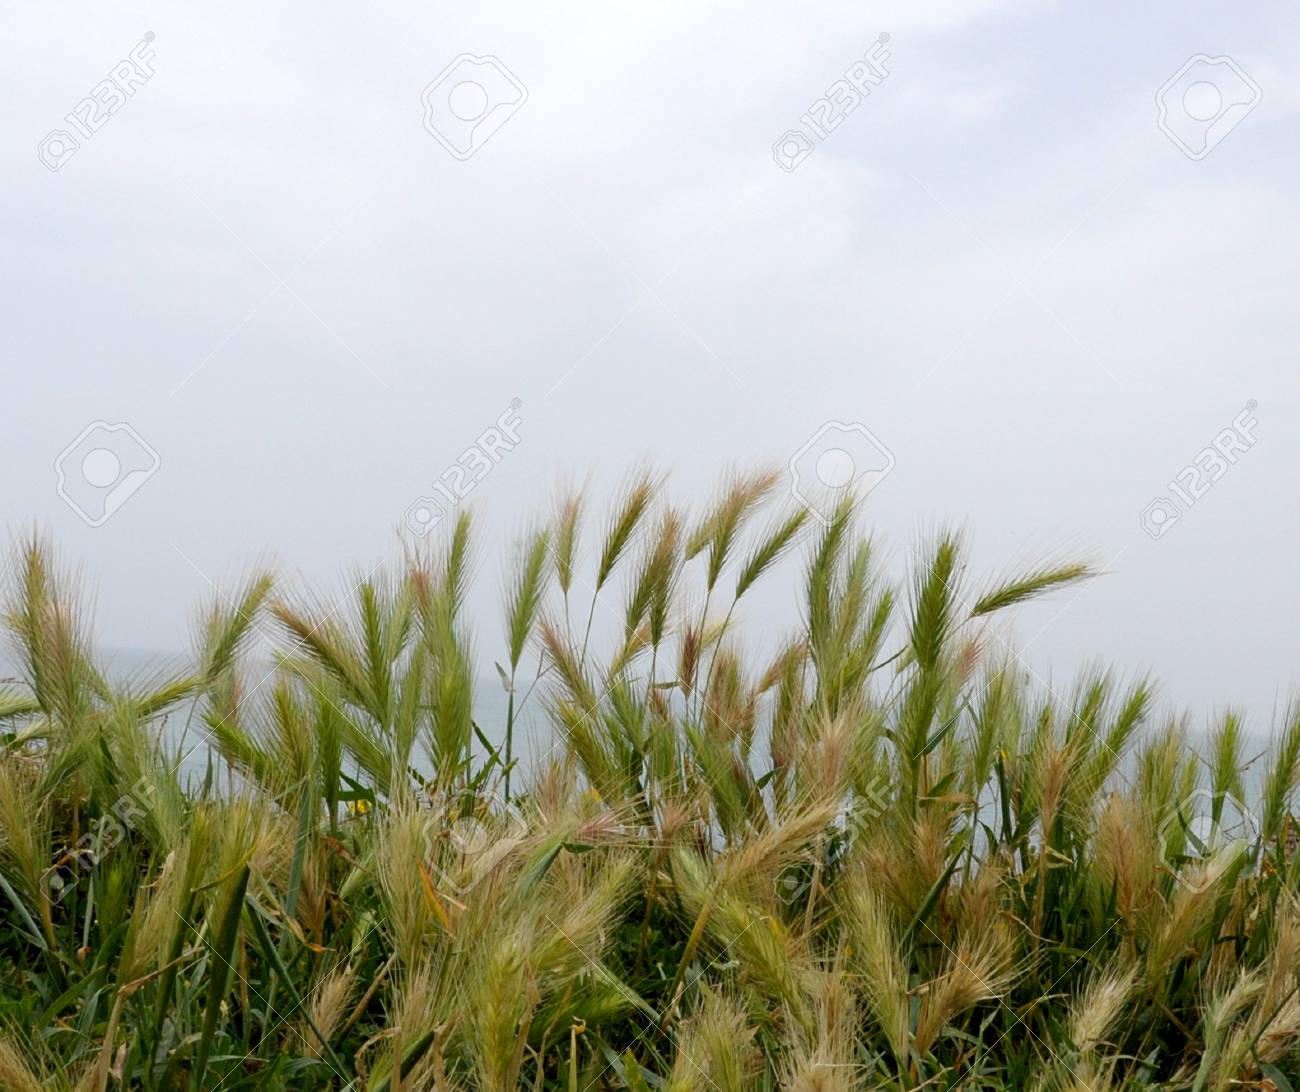 Grain growing in a farm field Stock Photo - 5044471